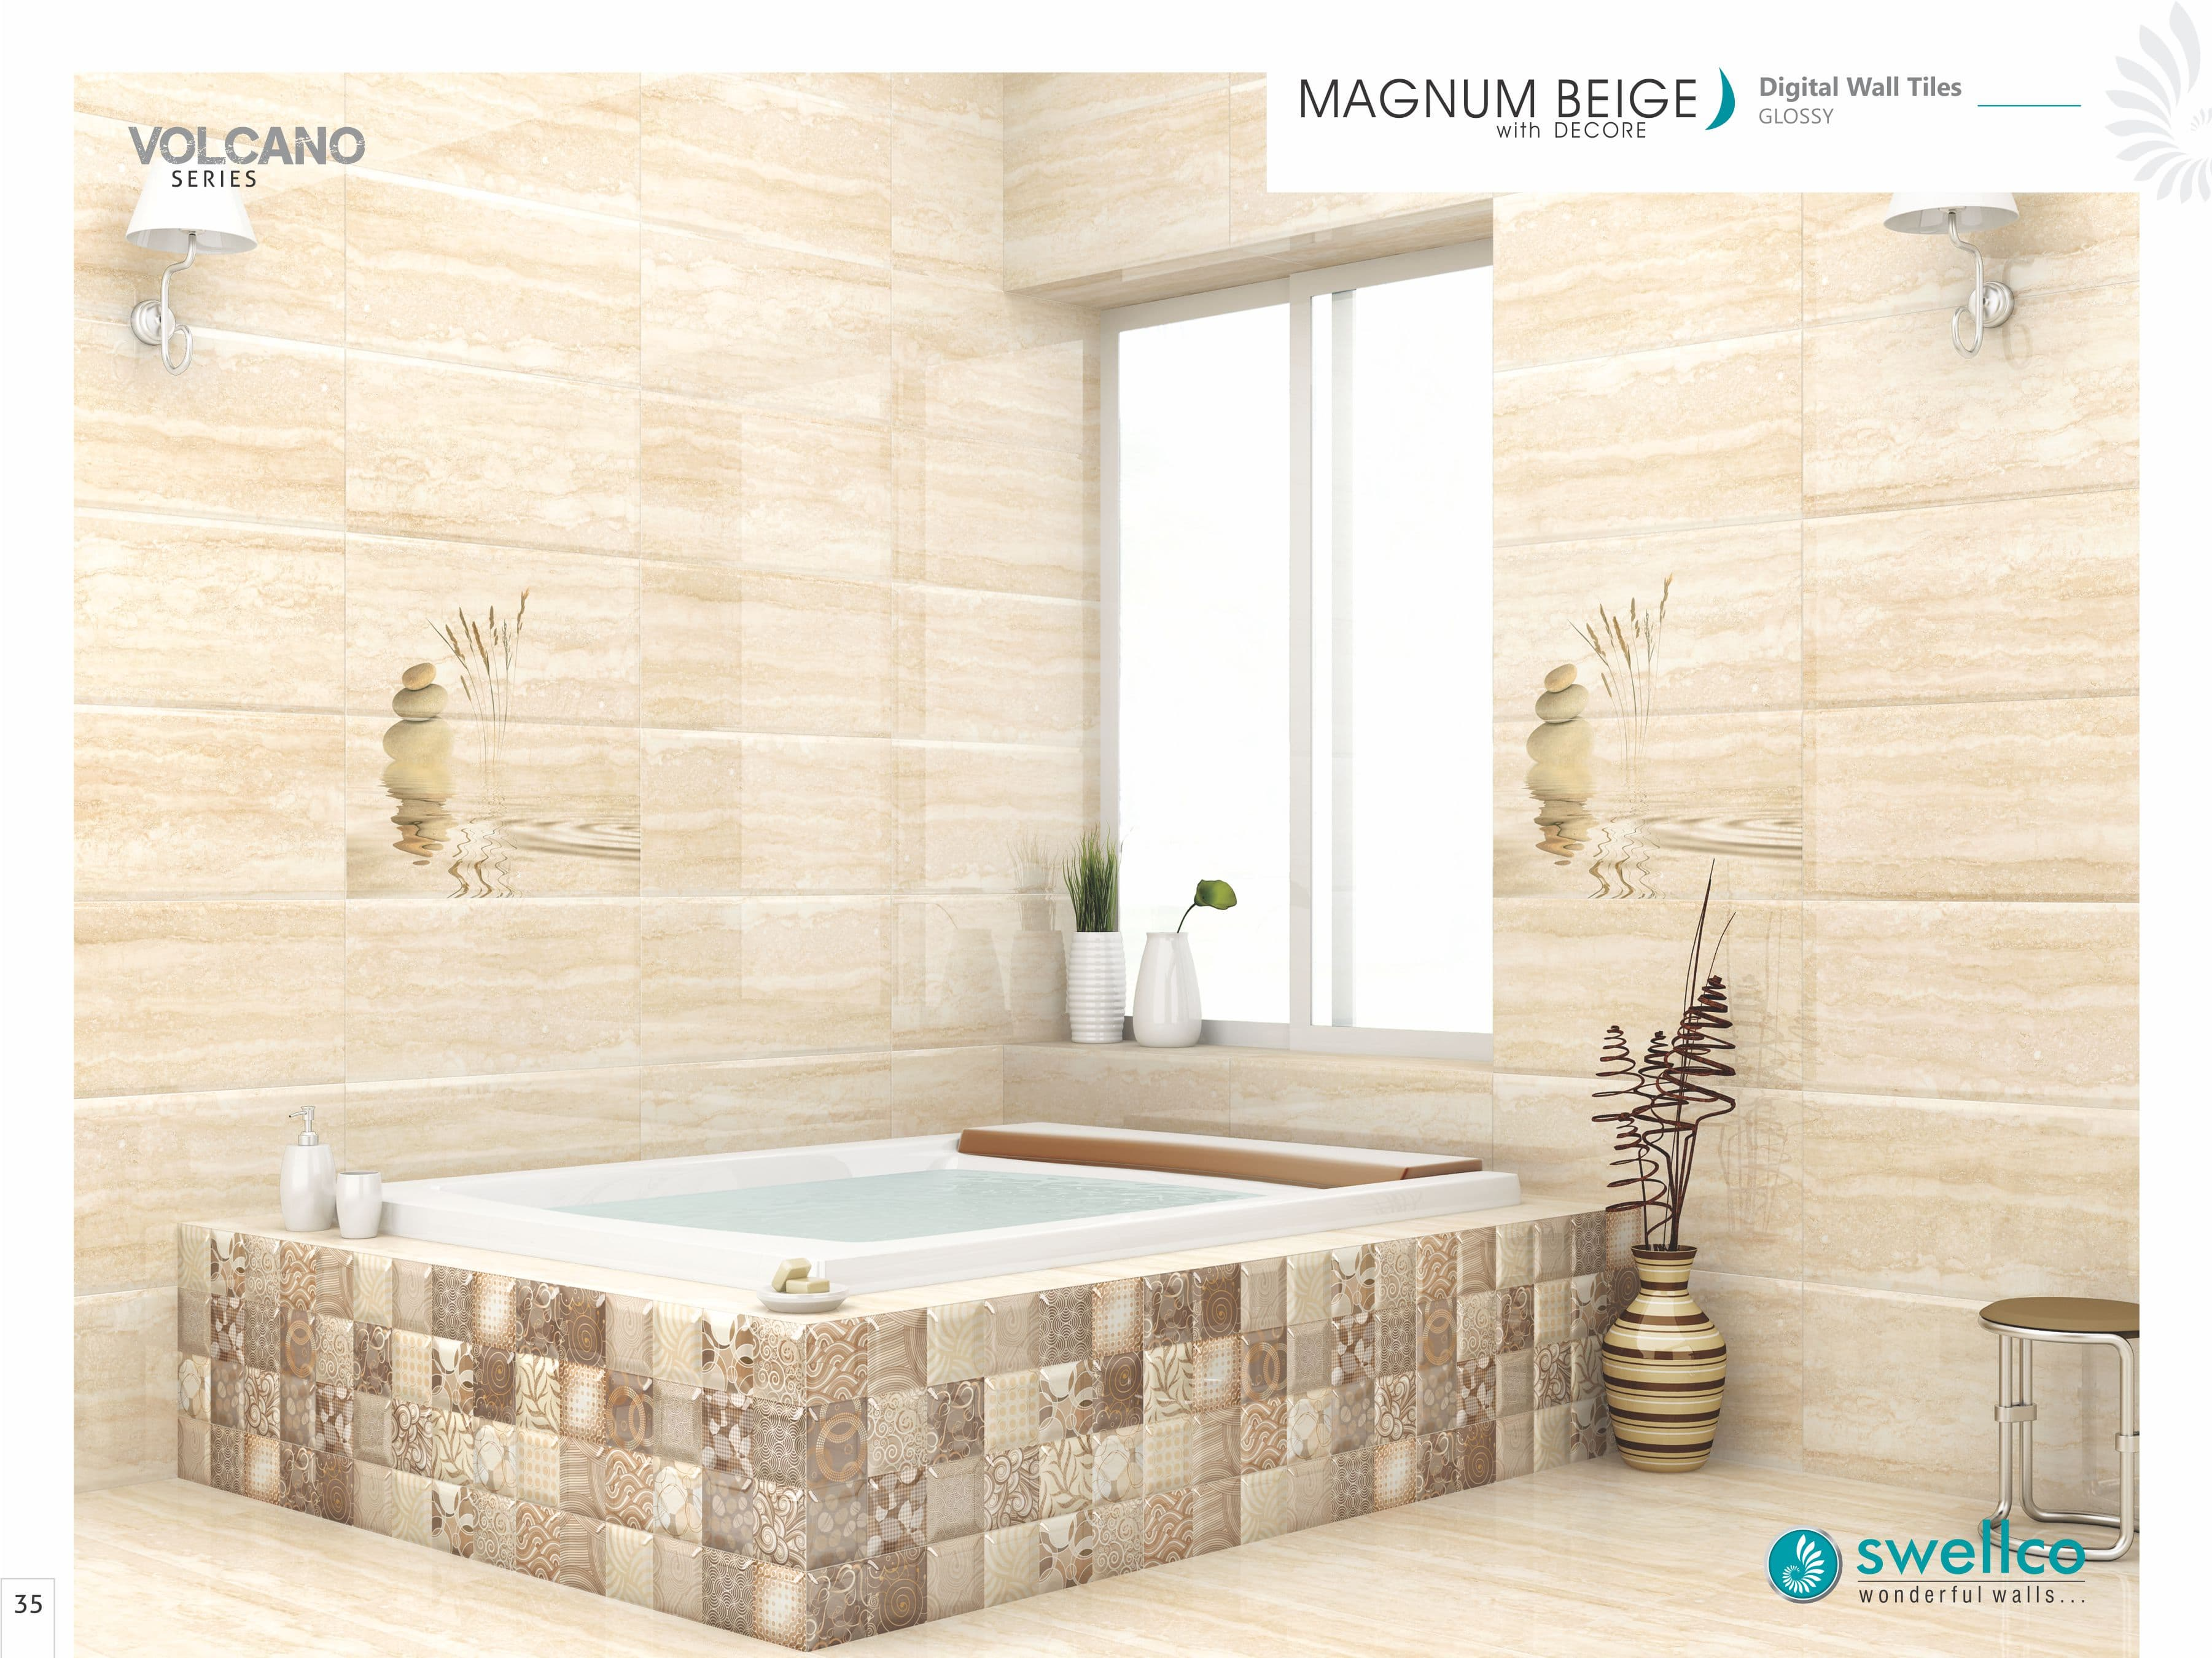 Ceramic tile industry statistics choice image tile flooring ceramic tile wall tile ceramic tile doublecrazyfo choice image dailygadgetfo Images